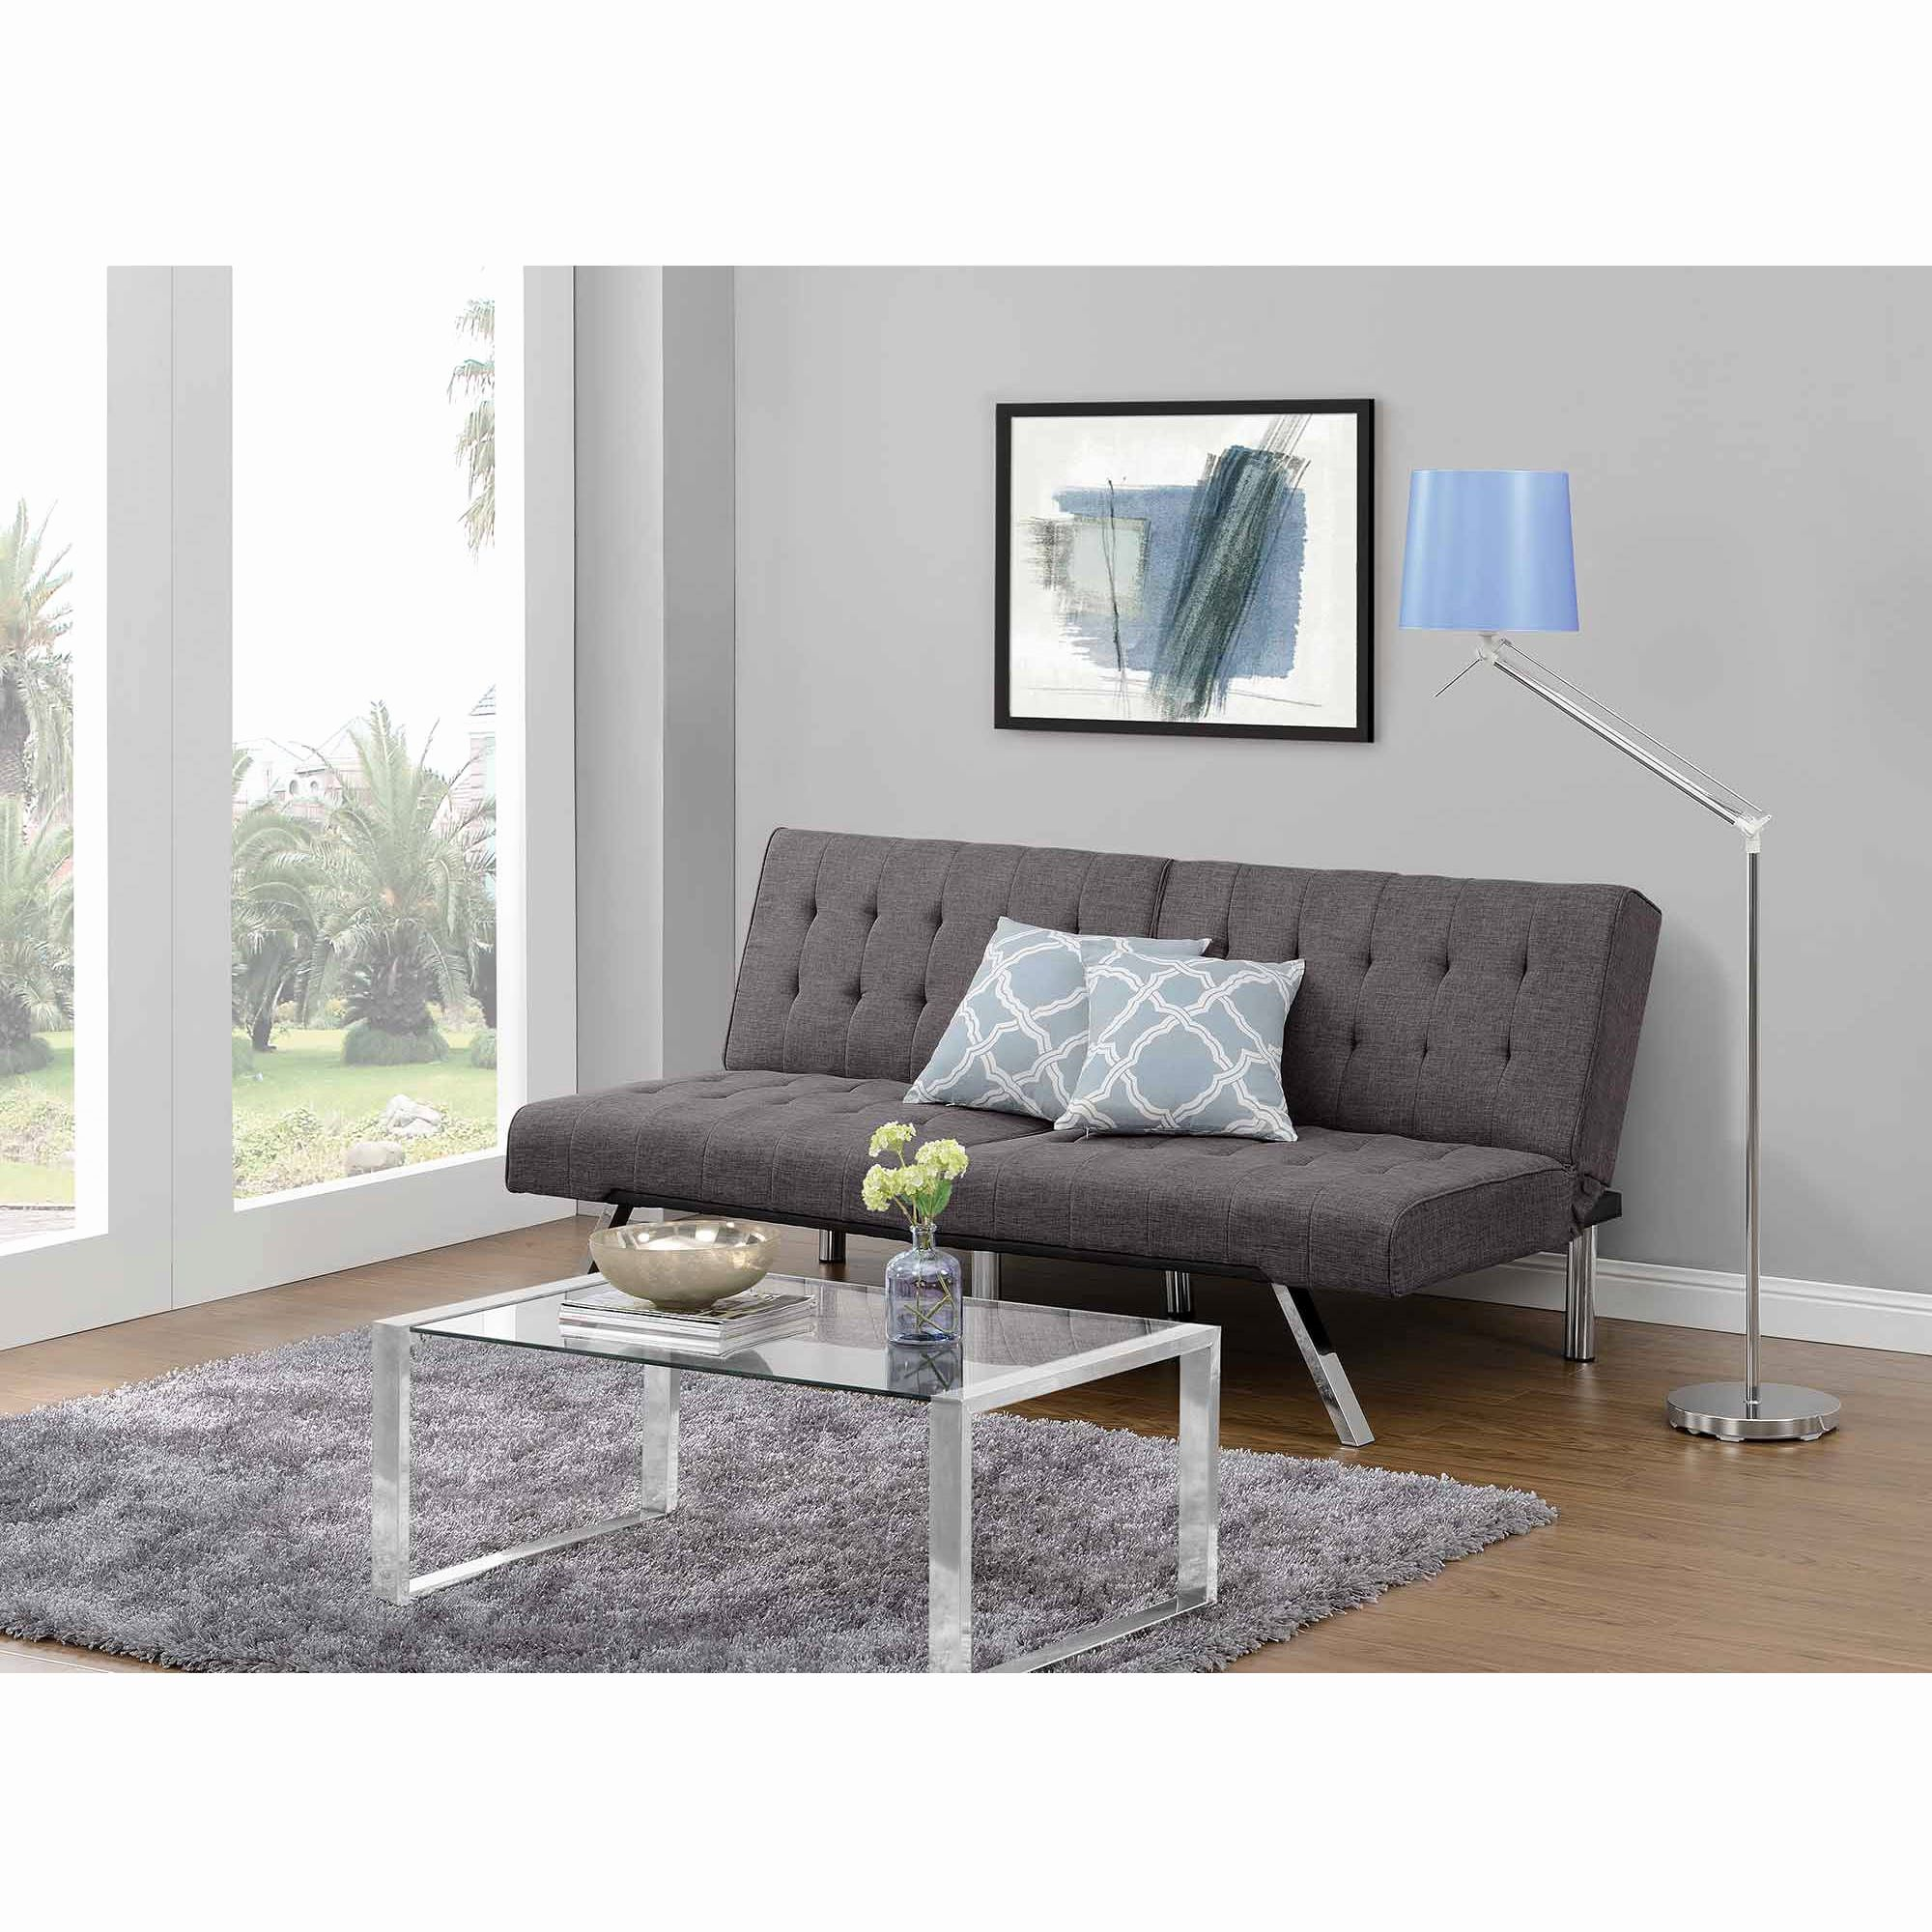 Idea Office Sofa Bed Picture Best Choice Products Modern Entertainment Futon Sofa Bed Fold Up Futon Living Room Futon Sofa Futon Sofa Bed